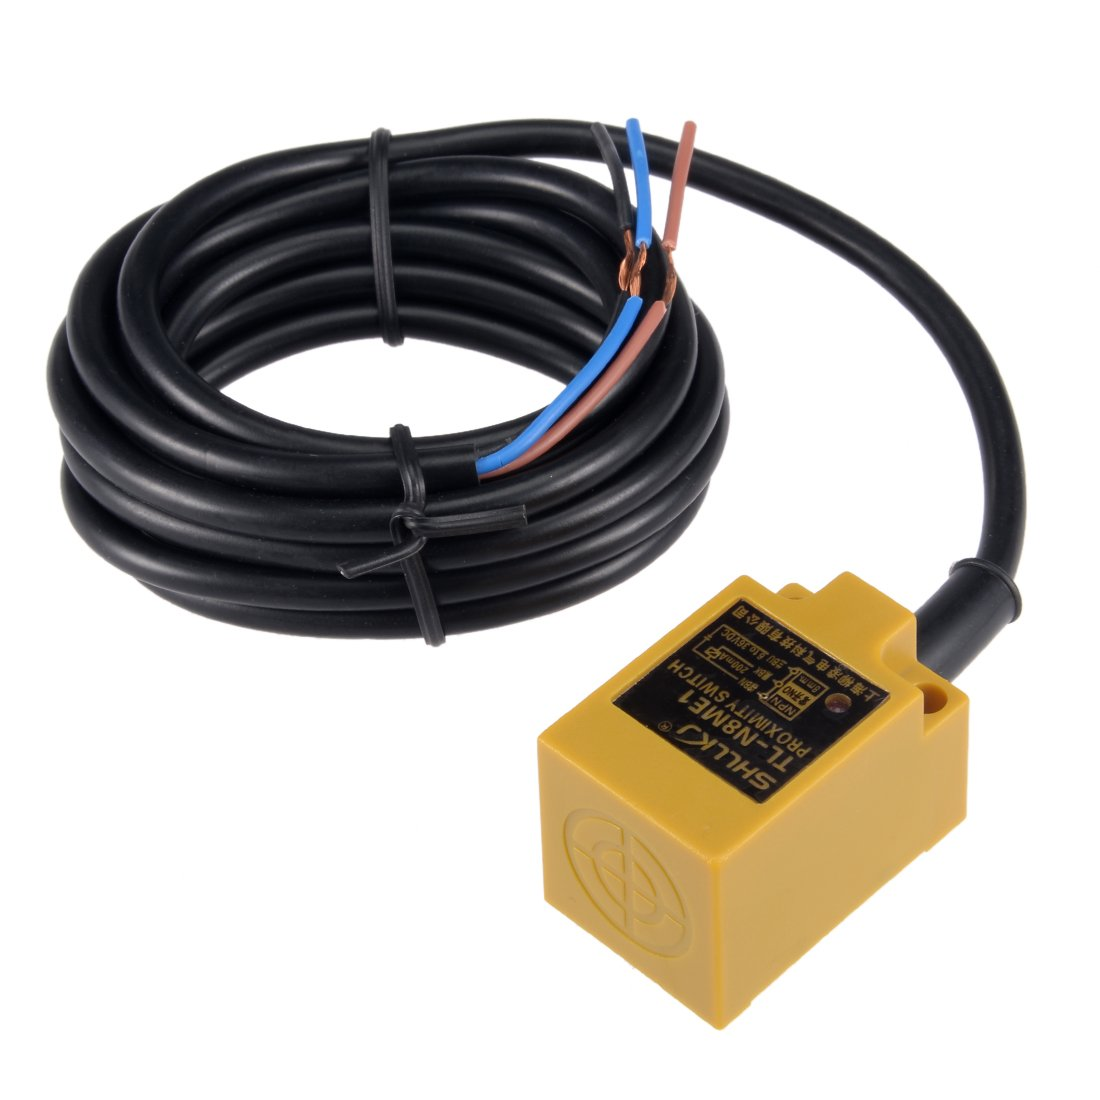 uxcell 8mm Inductive Proximity Sensor Switch Detector NPN NO DC 6-36V 200mA 3-Wire TL-N8ME1